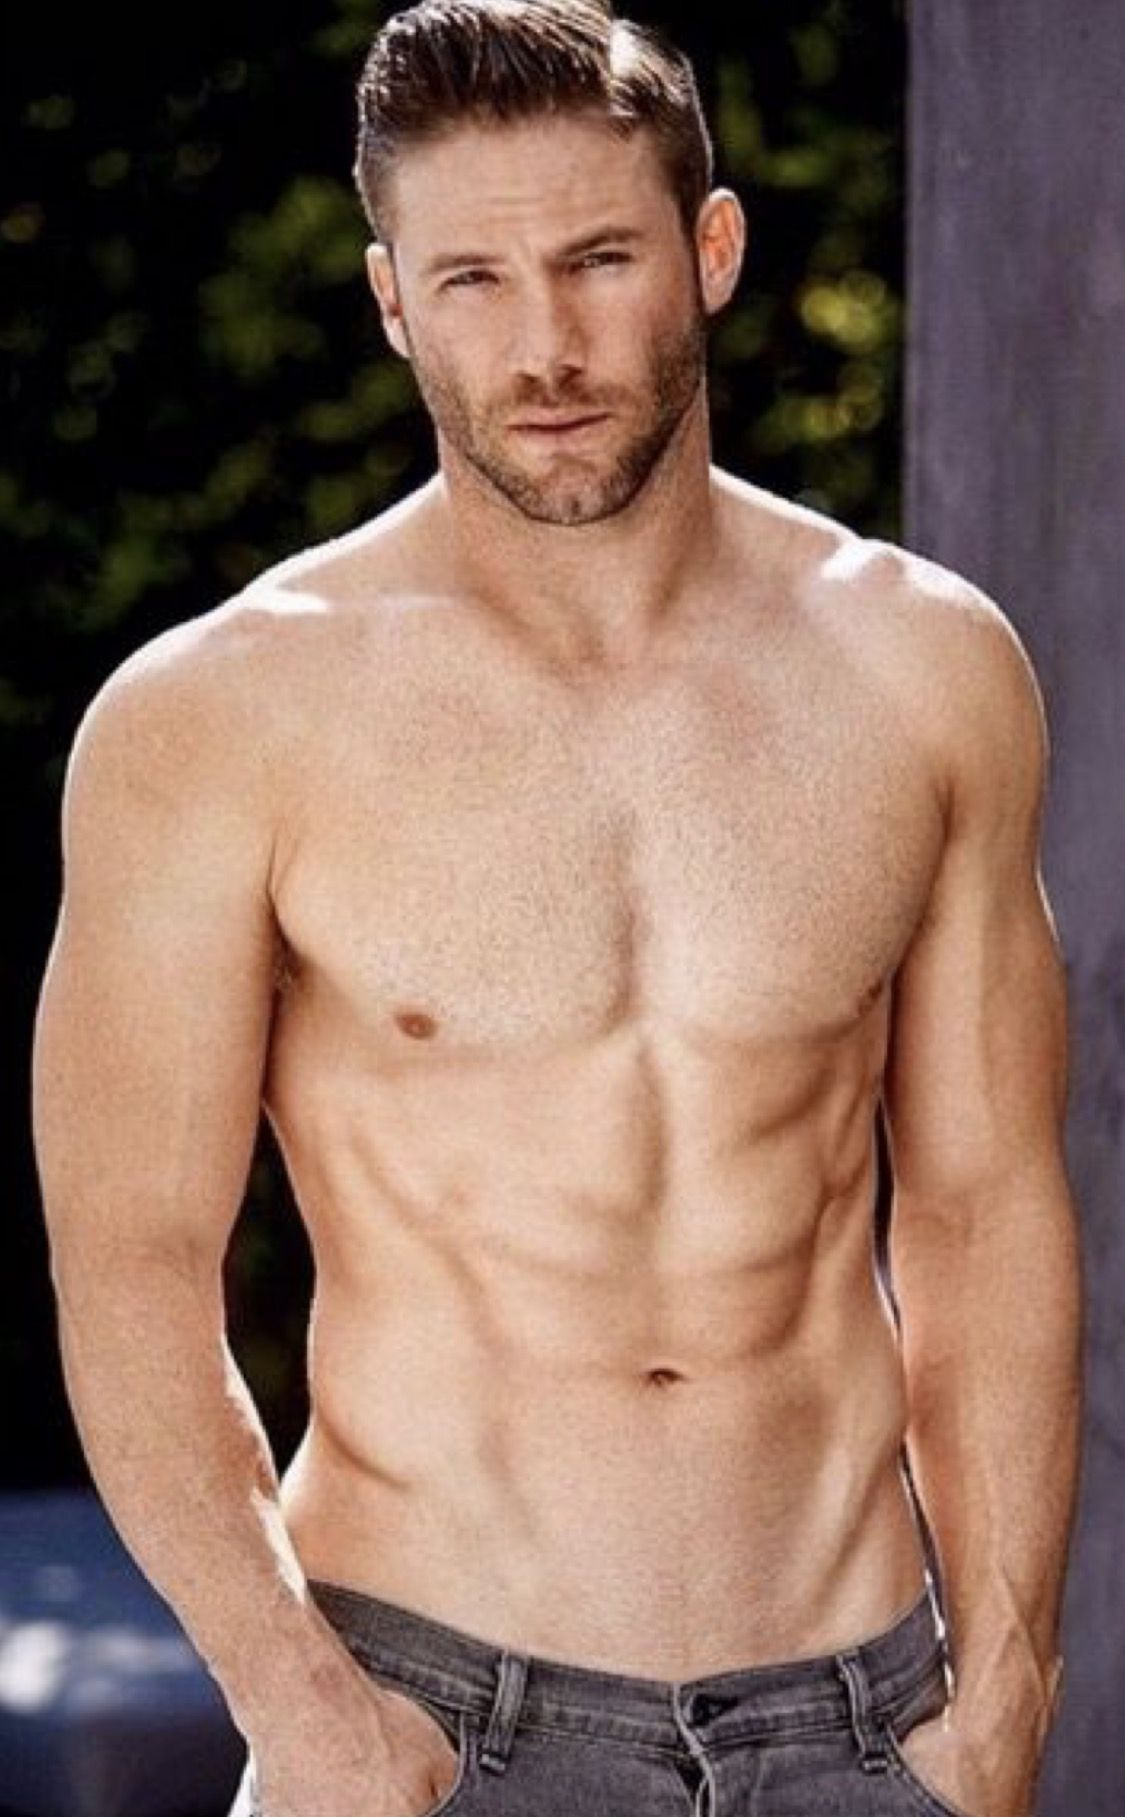 ginger | Sexy man | Pinterest | Sexy, Hot dogs and Sexy men